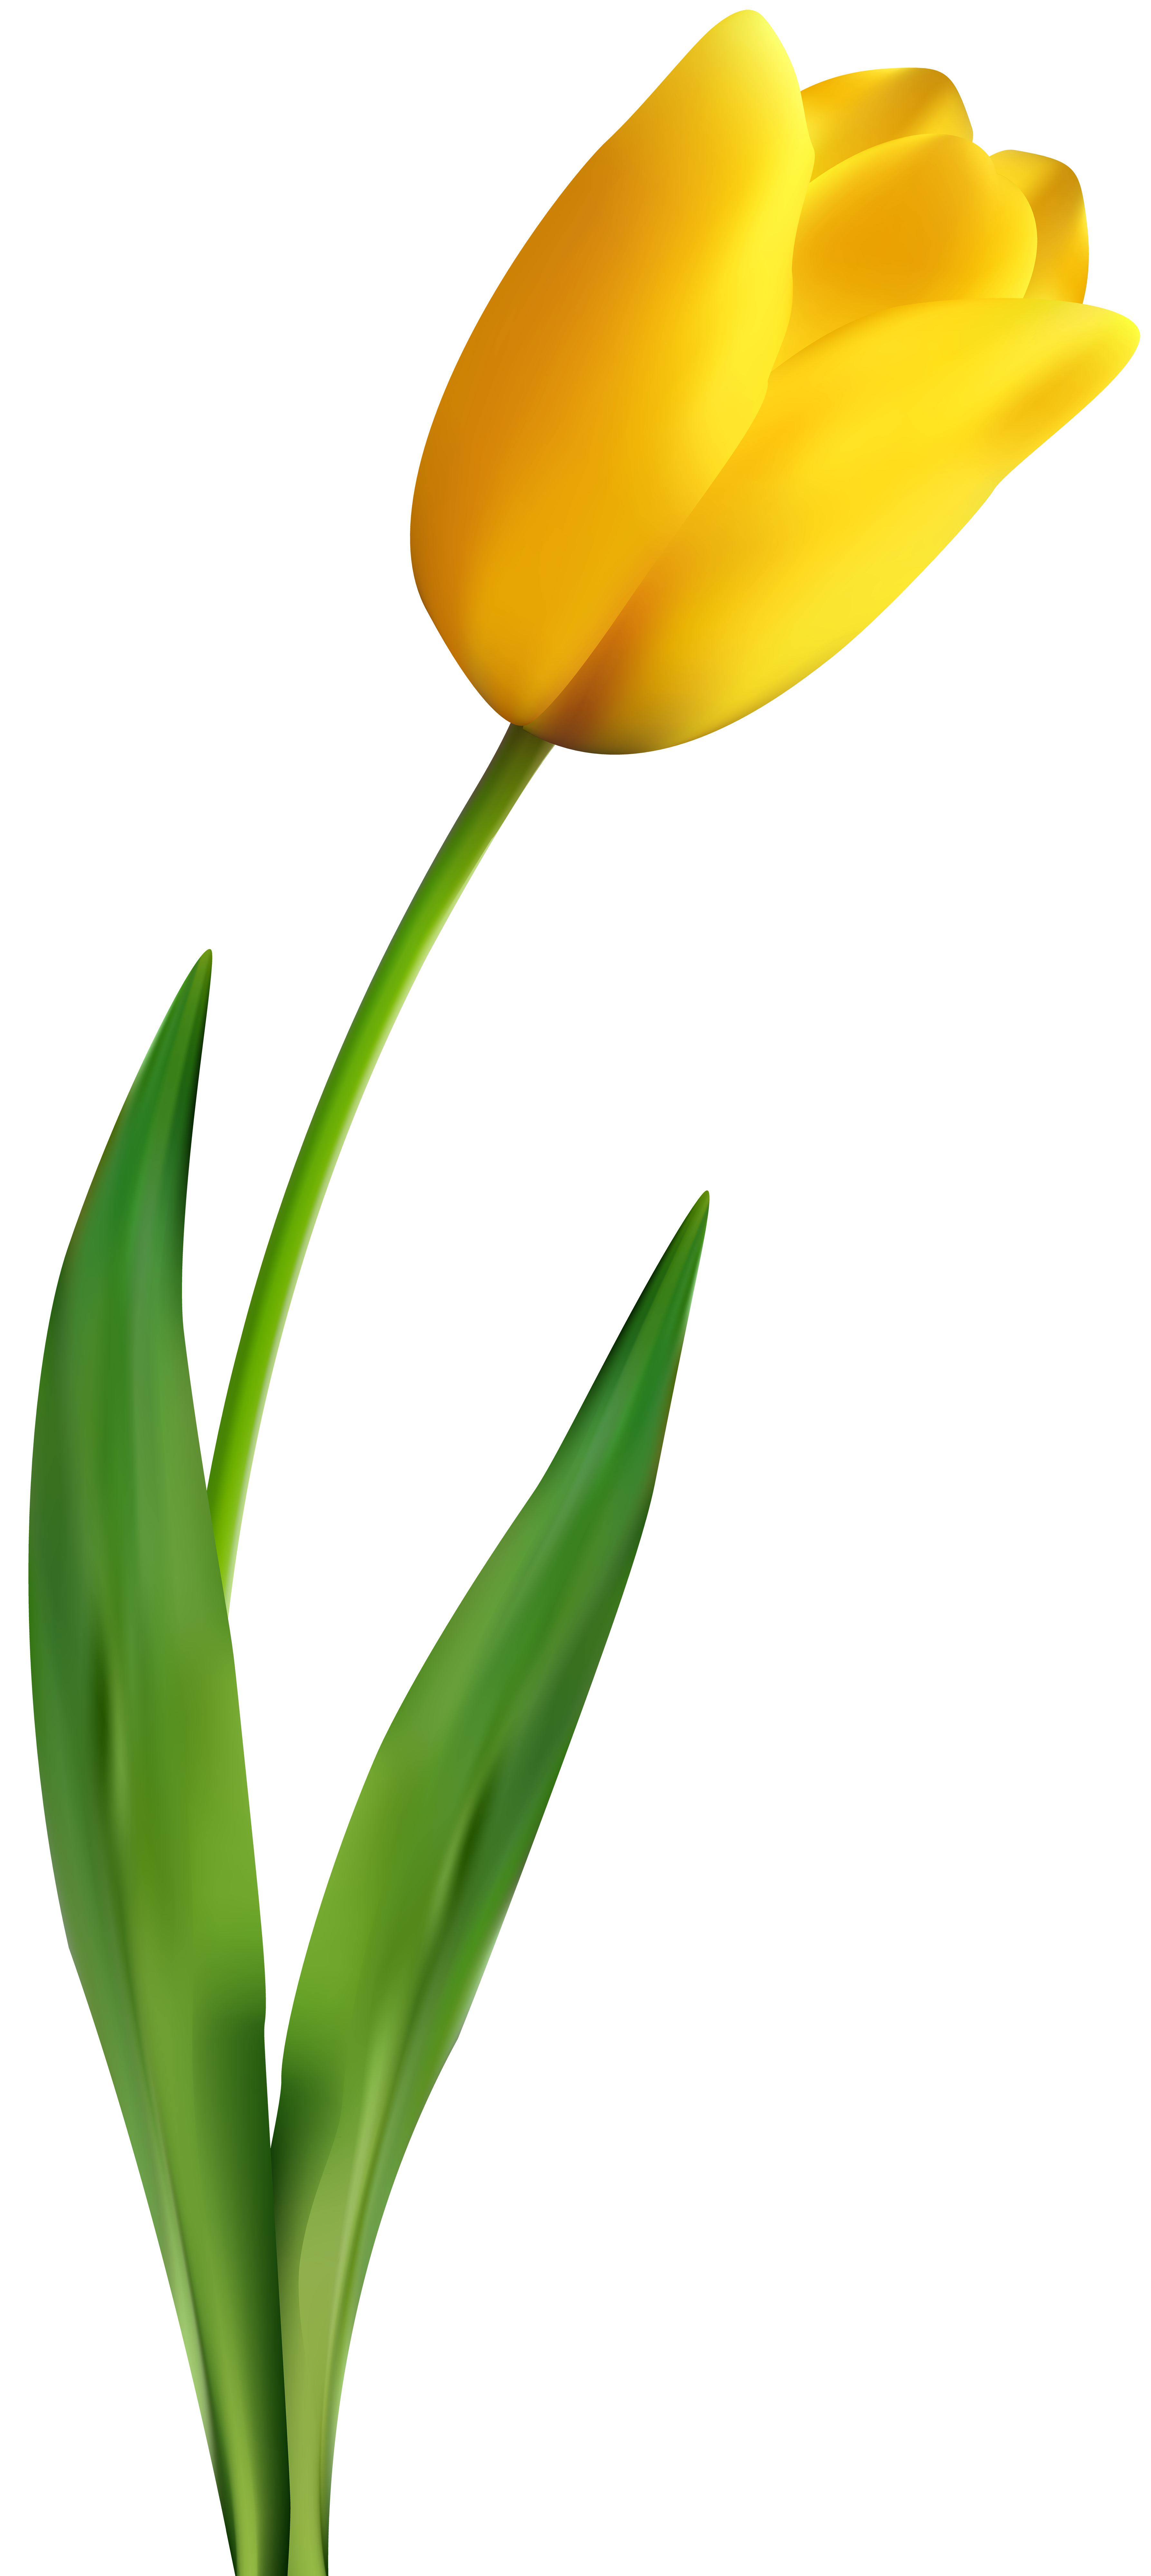 Tulips clipart transparent background free clip art library library Tulip Flower Yellow Clip art - tulip material png download ... clip art library library